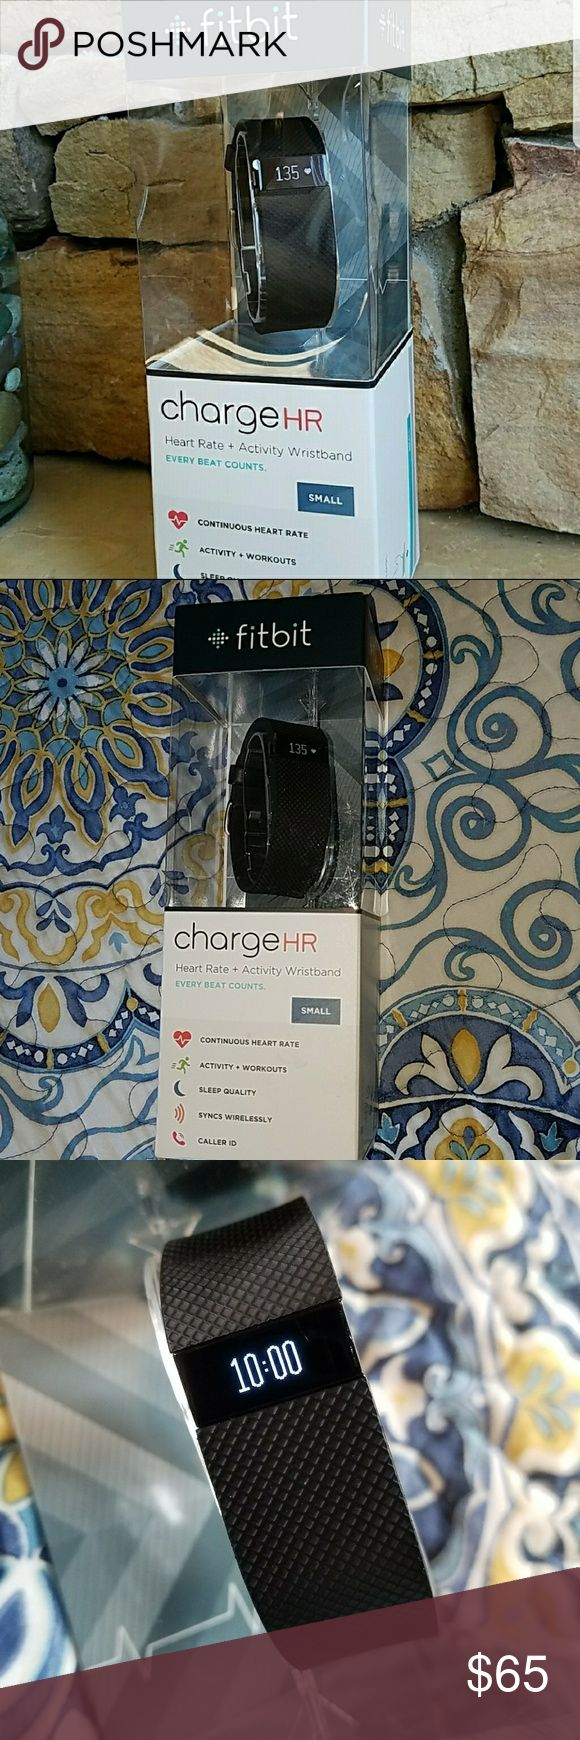 Fitbit Charge HR black small activity tracker Continuous heart rate detecting, step counter, activity and workout tracker. Keeps track of sleep quality and syncs wirelessly, also has caller ID that comes across screen. Used for 8 days, just didn't need all the extras. Works great, took picture with time on screen and one of it without to show small scratch on screen, does not affect it any way and barely noticeable unless looking up close or with flash! Fitbit Accessories